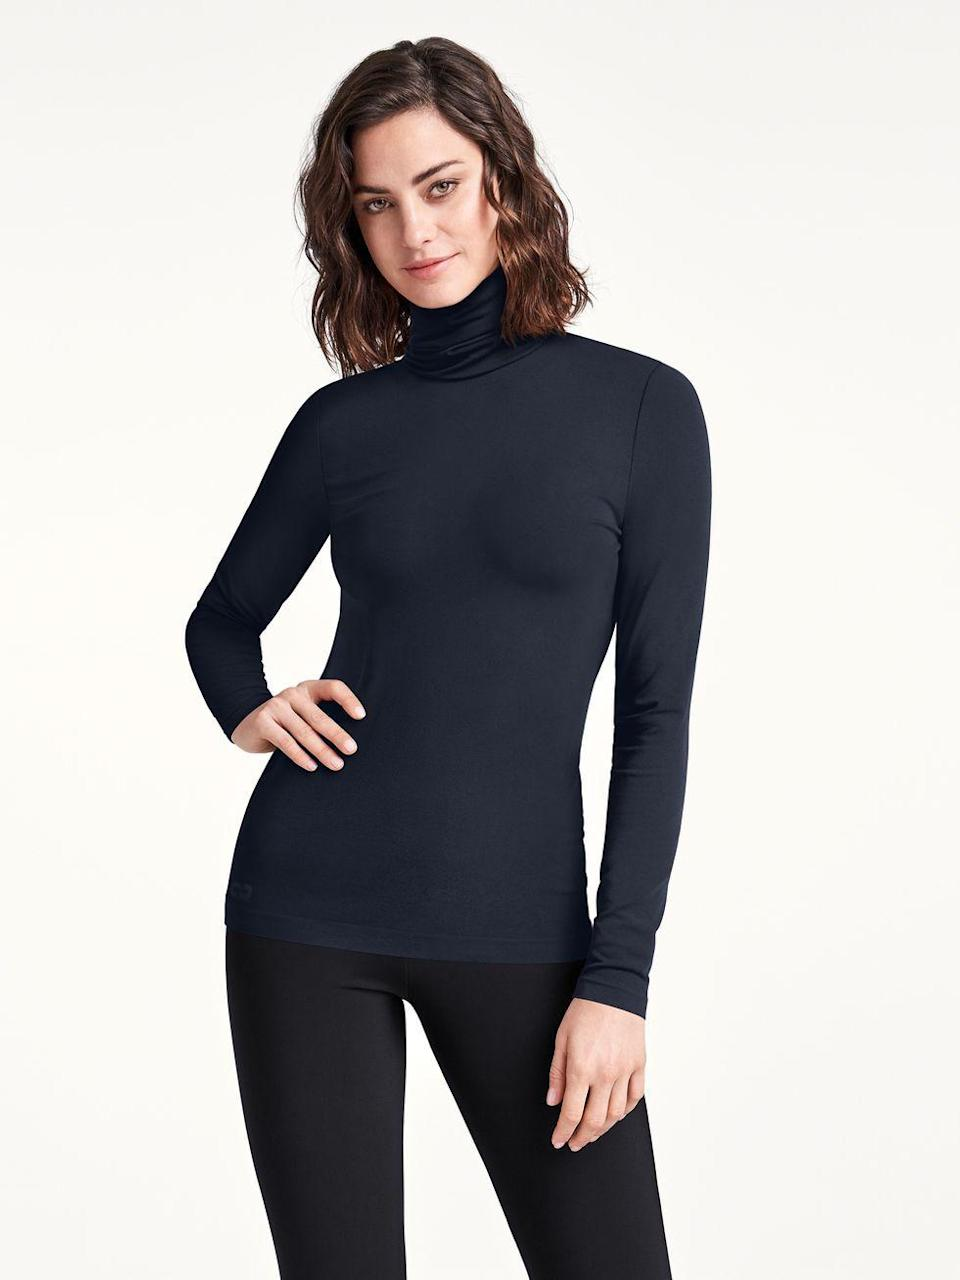 """<p>If there's one thing we're familiar with during the pandemic, it's working from home in our most comfortable styles - that means anything with stretch. </p><p>Wolford, the go-to brand for basics including shapewear and leggings, long before Kim K came along with SKIMS, is now even more desirable thanks to its commitment to sustainability. </p><p>It's the first and only company in apparel and textiles to hold two certificates stating they are Cradle to Cradle Certified™ at gold level. (That means it's legit.) Its recently launched Aurora collection, available via its website and <a href=""""https://www.net-a-porter.com/en-gb/shop/designer/wolford"""" rel=""""nofollow noopener"""" target=""""_blank"""" data-ylk=""""slk:Net-a-Porter"""" class=""""link rapid-noclick-resp"""">Net-a-Porter</a>, is made of biodegradable fabrics. But, that being said, the styles are also so timeless and well-made that you'll be wearing them for decades. </p><p><a class=""""link rapid-noclick-resp"""" href=""""https://go.redirectingat.com?id=127X1599956&url=https%3A%2F%2Fwww.net-a-porter.com%2Fen-gb%2Fshop%2Fdesigner%2Fwolford&sref=https%3A%2F%2Fwww.elle.com%2Fuk%2Ffashion%2Fwhat-to-wear%2Fg22788319%2Fsustainable-fashion-brands-to-buy-from-now%2F"""" rel=""""nofollow noopener"""" target=""""_blank"""" data-ylk=""""slk:SHOP WOLFORD NOW"""">SHOP WOLFORD NOW</a></p>"""